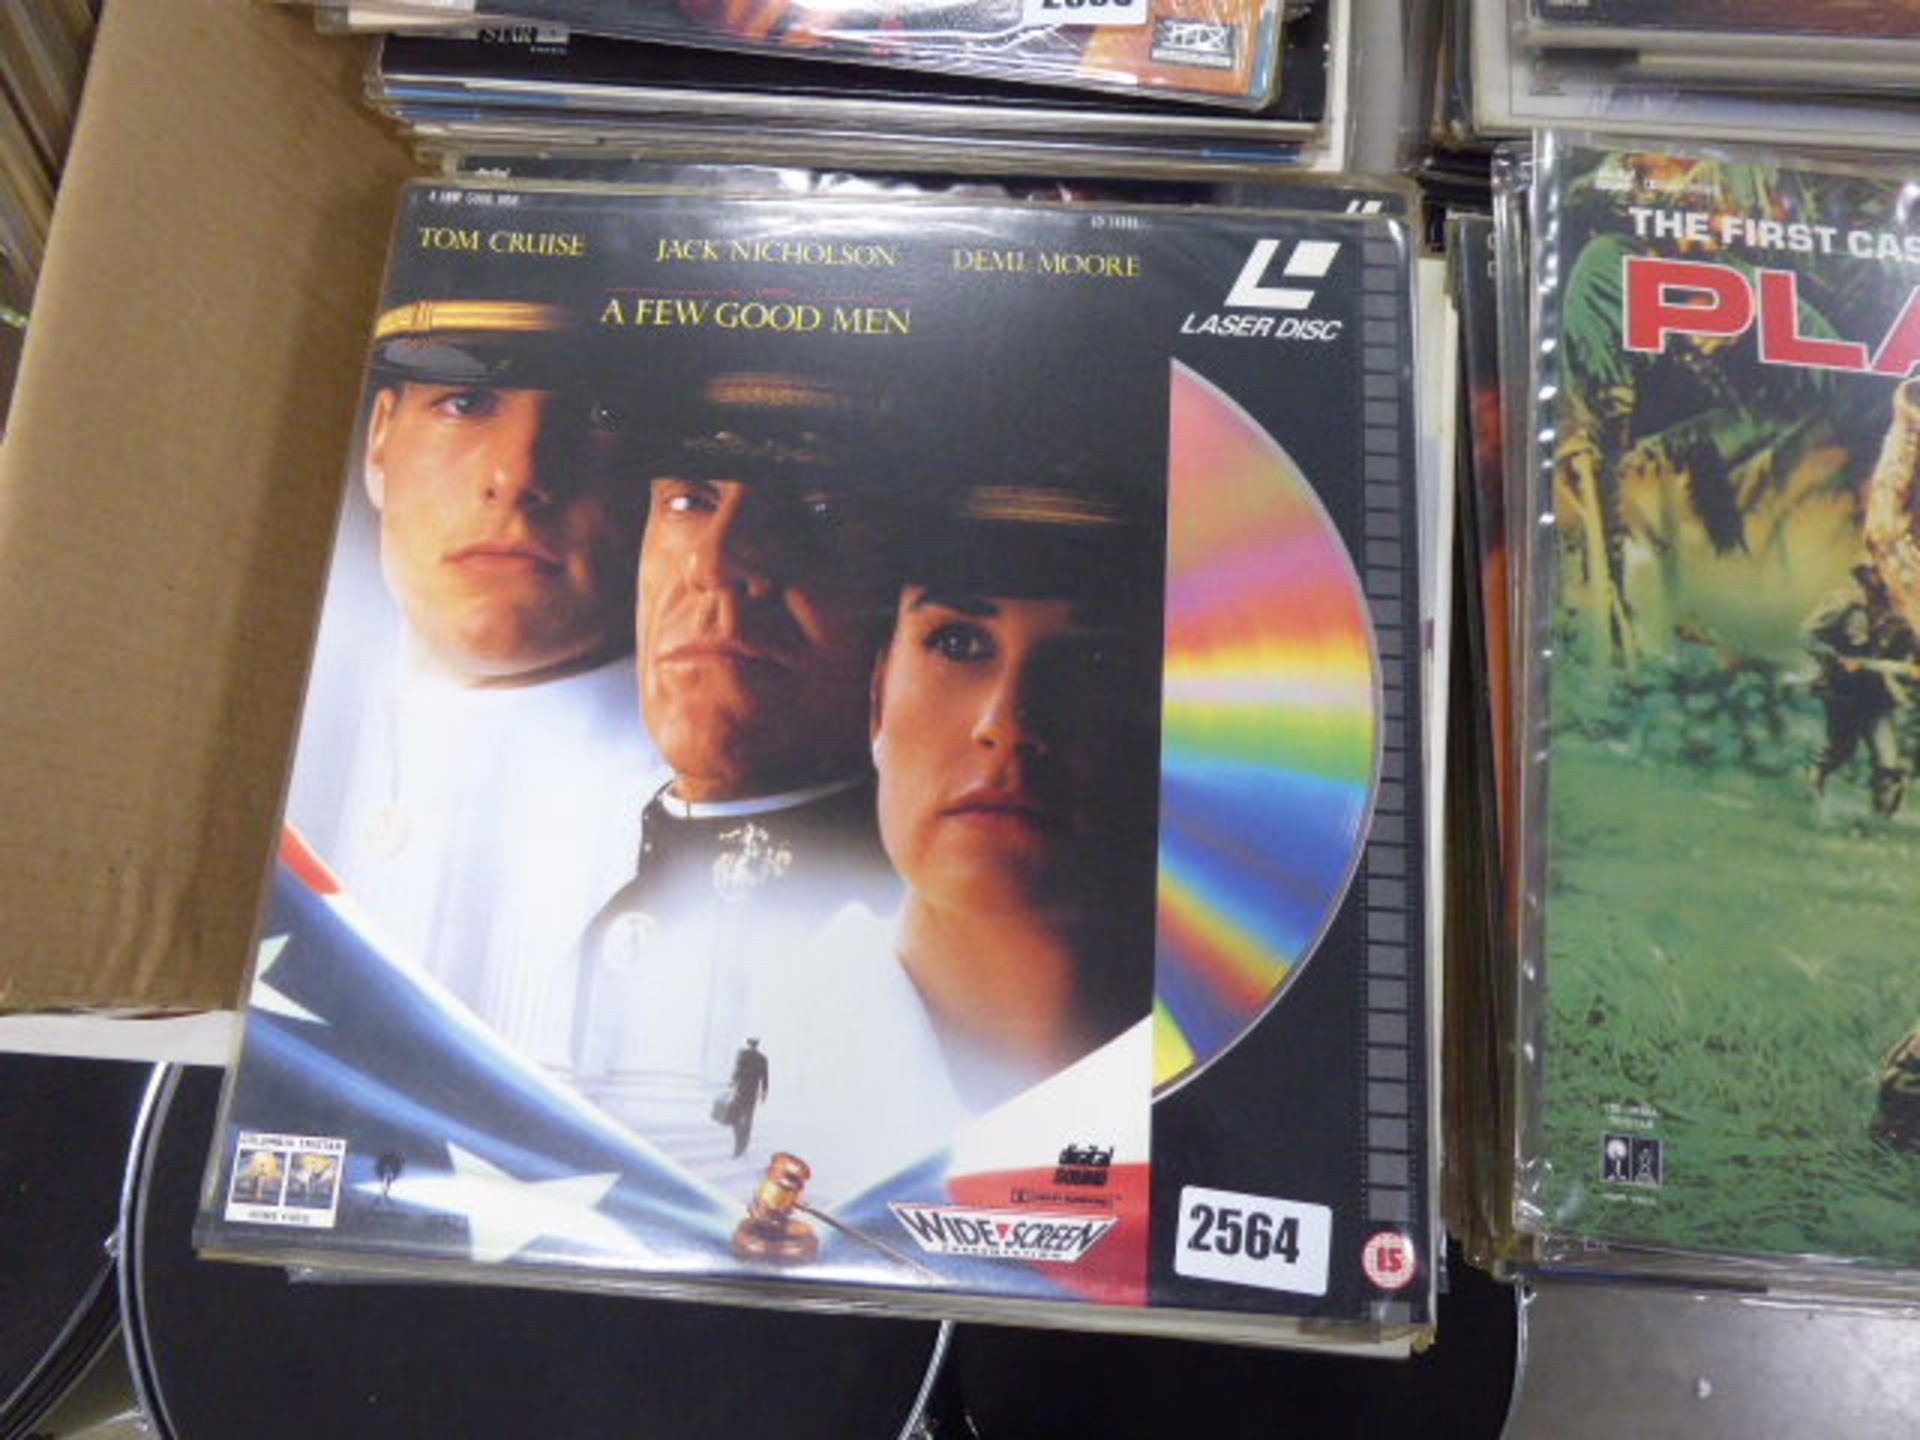 Lot 2564 - Approx 20 Pioneer and other laser disk movies to inc. A Few Good Men, Boyz in the Hood, Return to